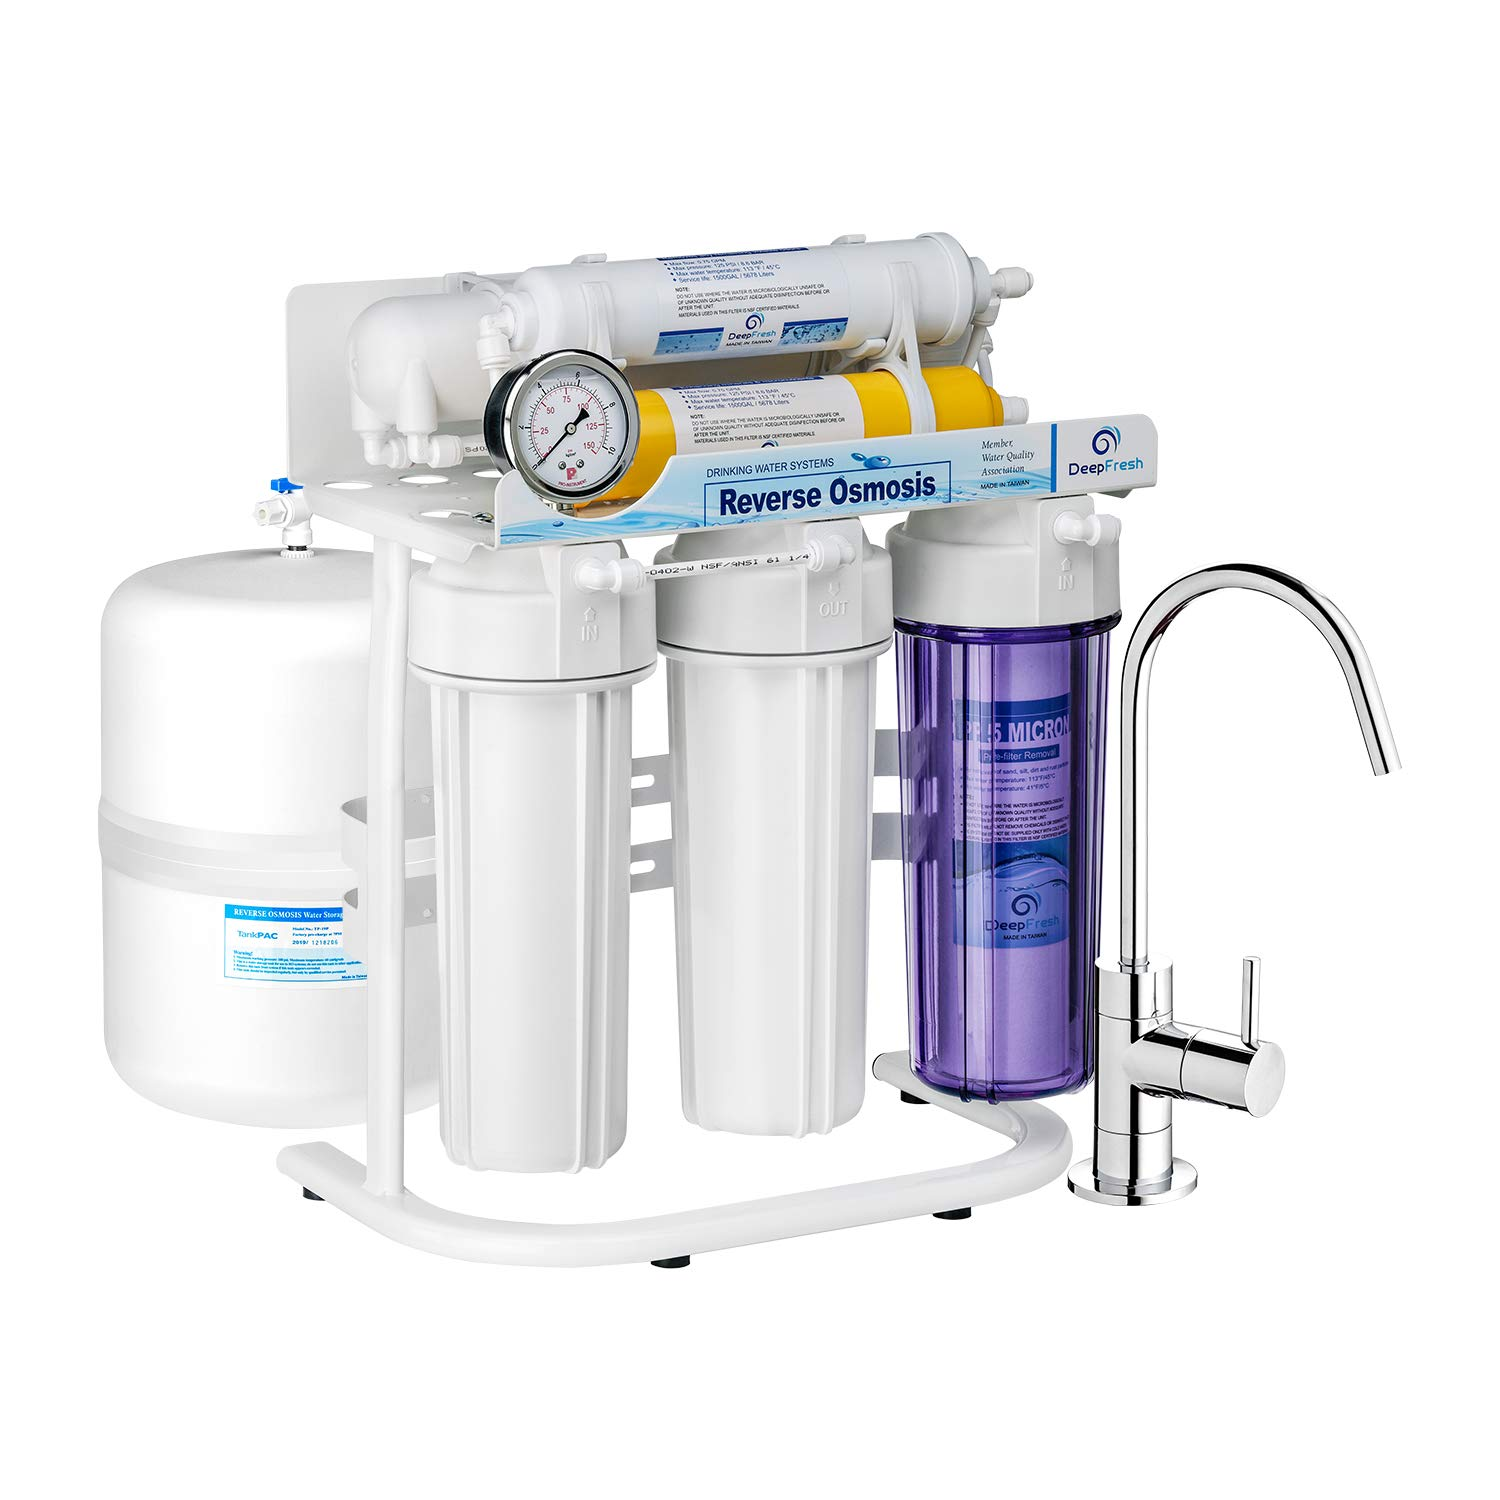 DeepFresh Water Filtration System Reverse Osmosis Water Filter System for Home Use 6-Stage Alkaline Water Filter System with 5-Gallon Pressurize Tank NSF Certified pH+ 75 GPD RO Filtration